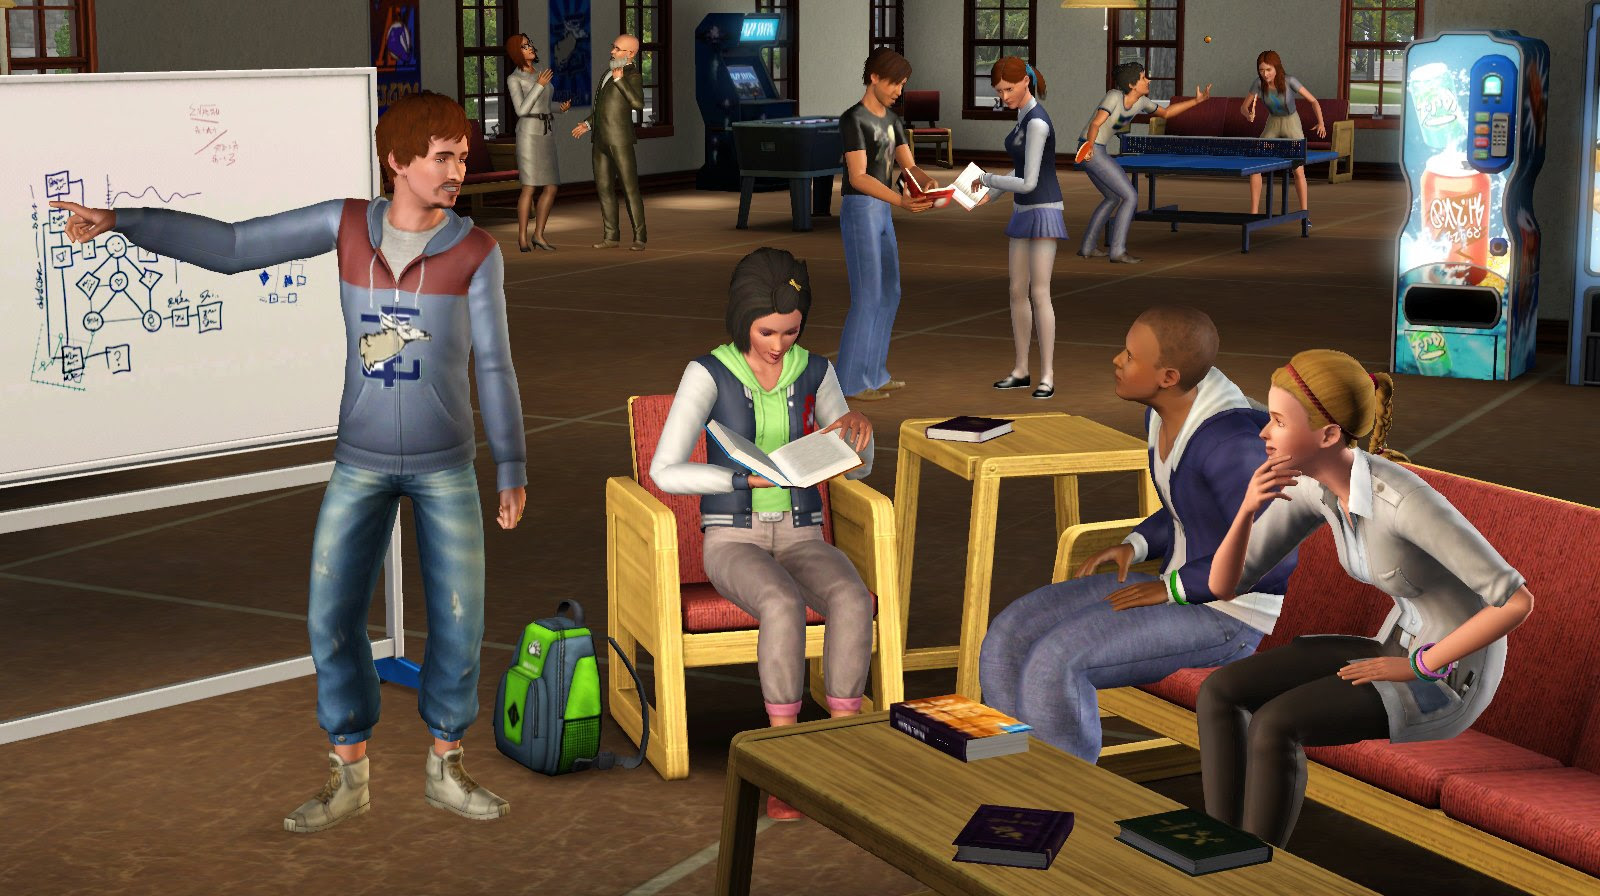 http://static2.wikia.nocookie.net/__cb20130308230759/simswiki/pt-br/images/0/0a/The_Sims_3_Vida_Universit%C3%A1ria_24.jpg